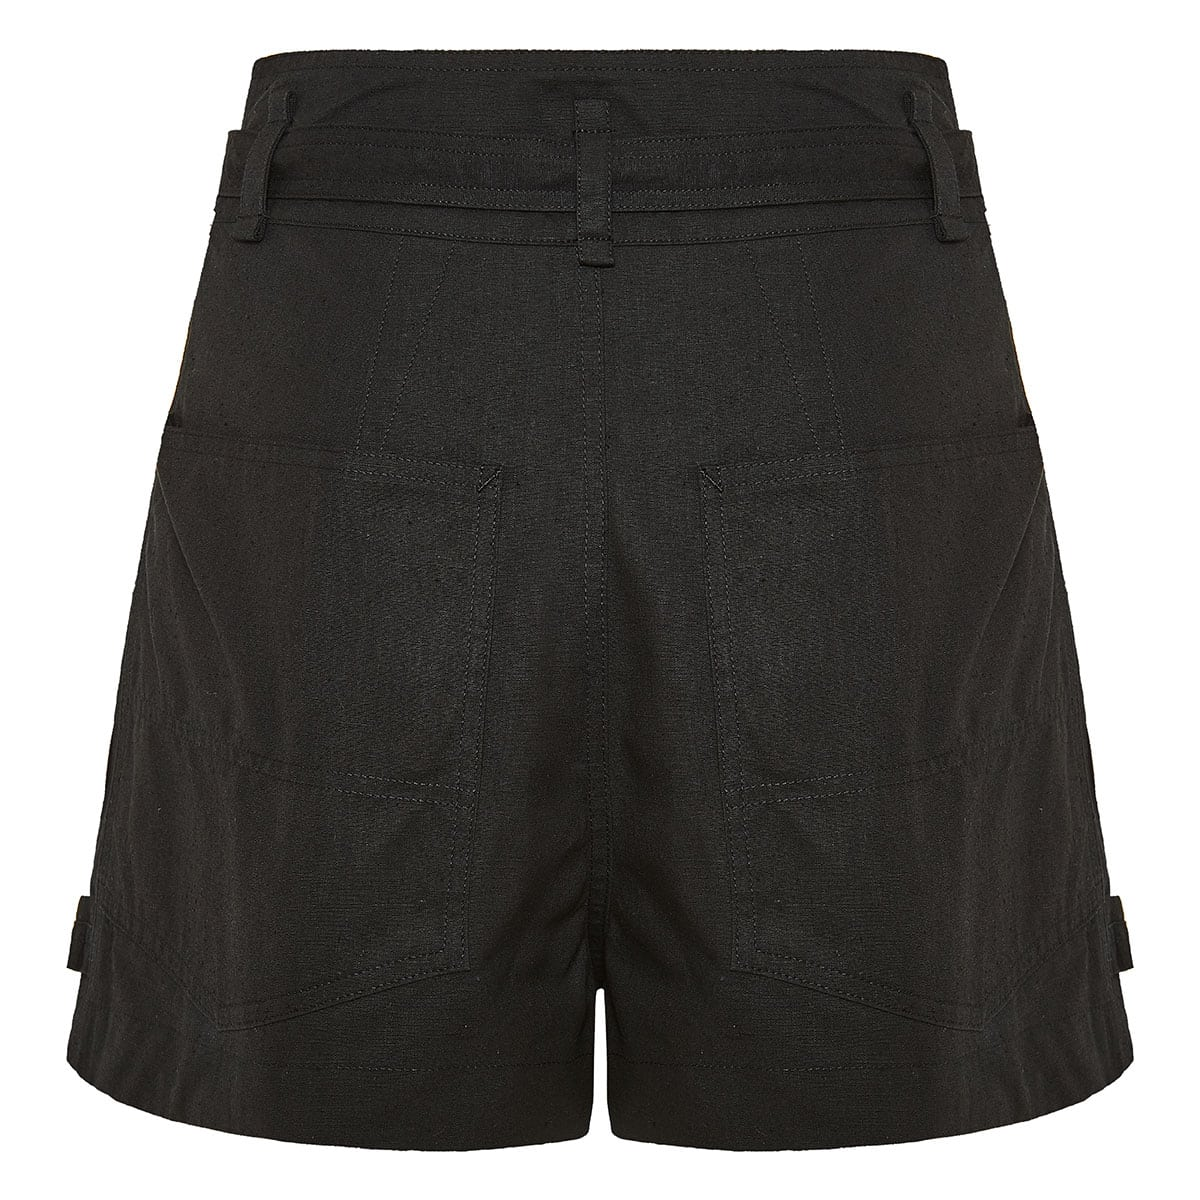 Wide-leg cotton shorts